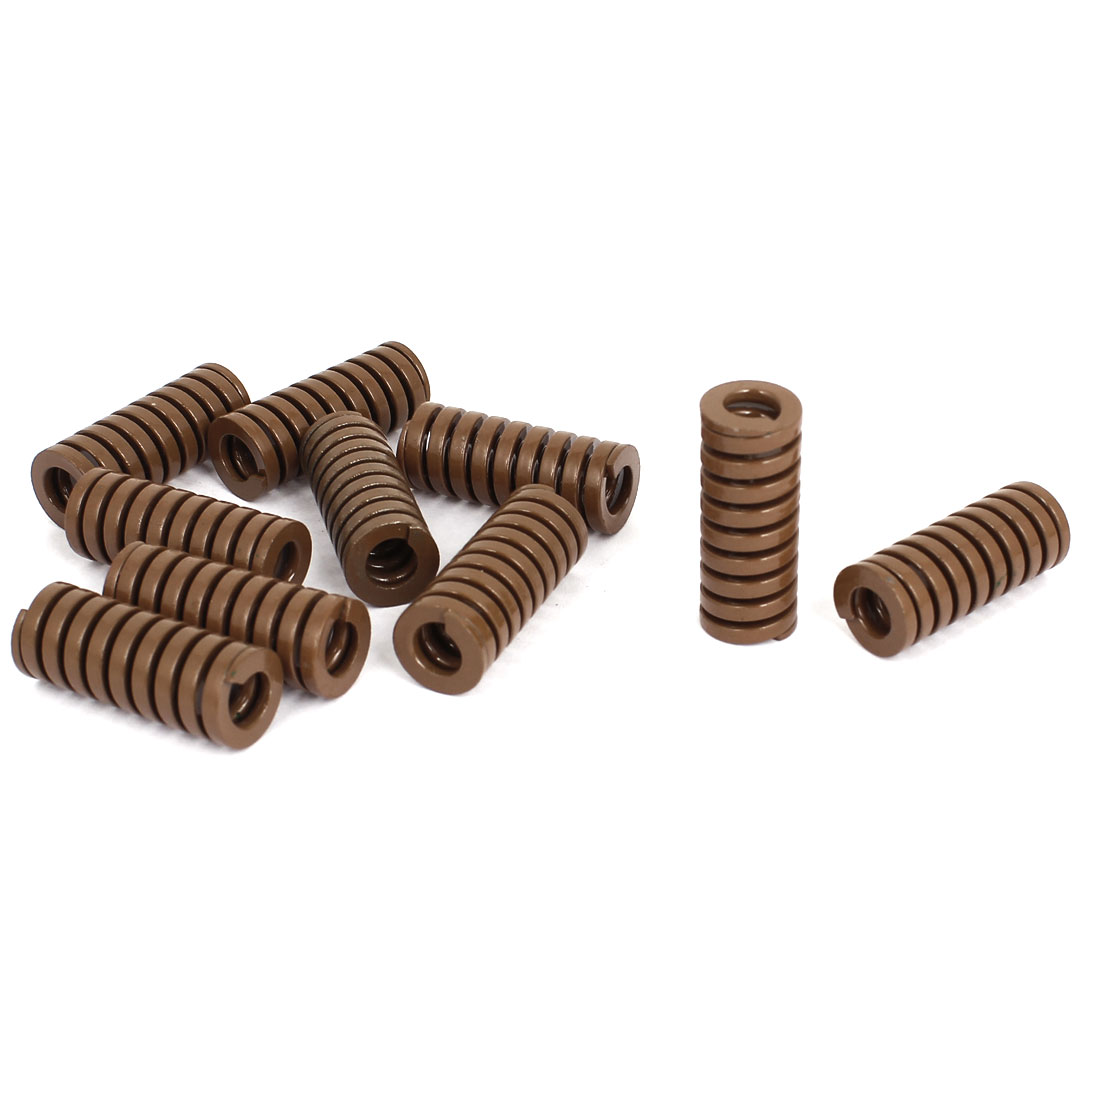 16mm OD 40mm Long Heavy Load Stamping Compression Mold Die Spring Brown 10pcs